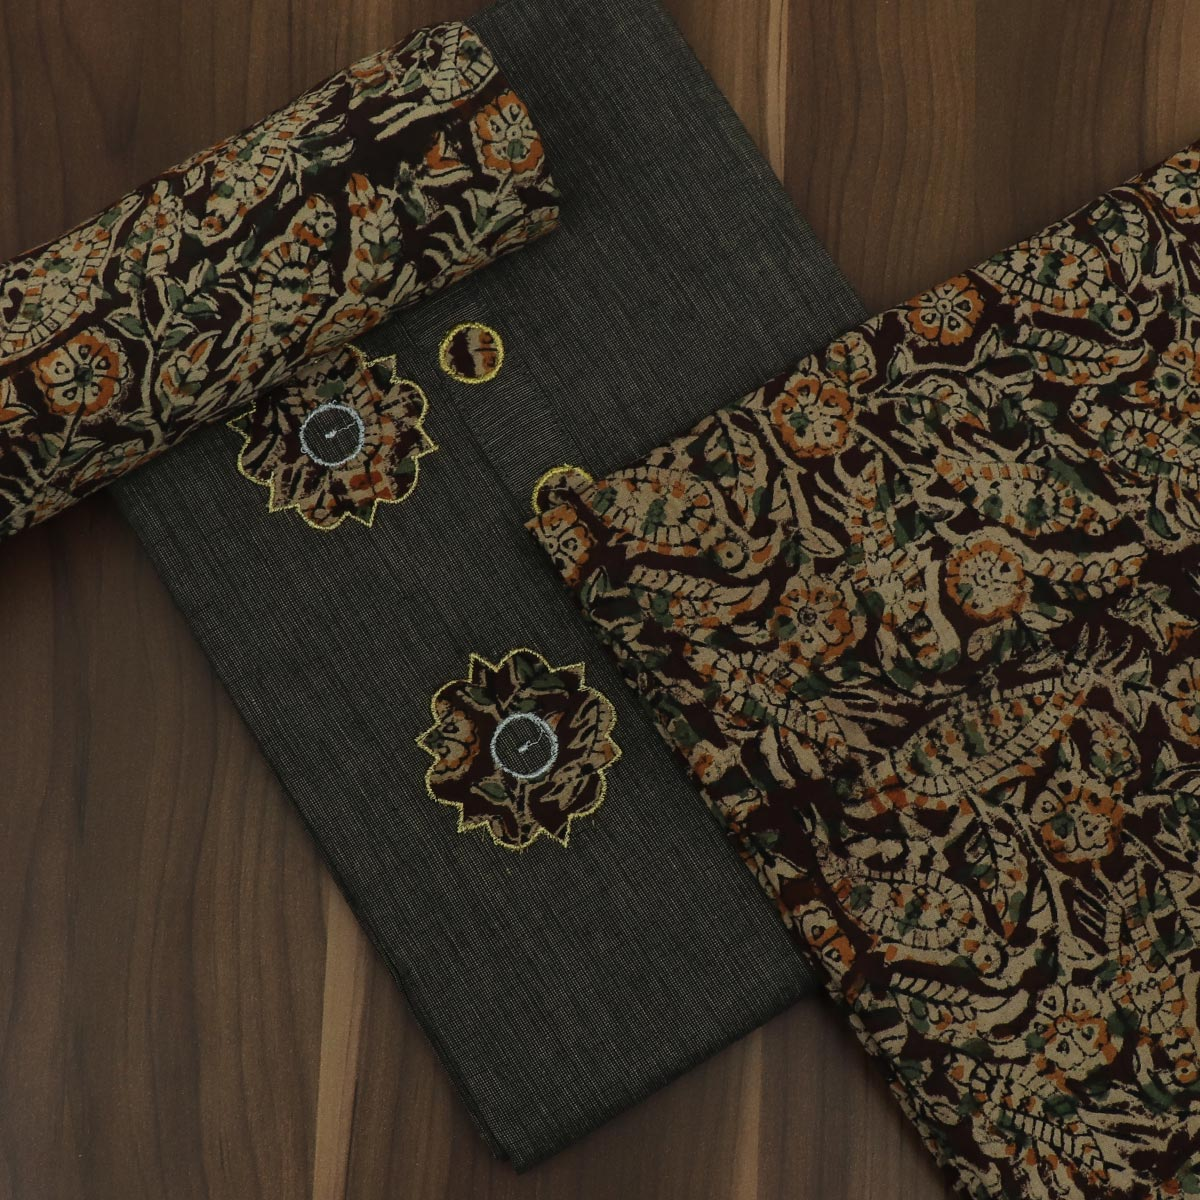 Dress Material -Black and Brown with Batik applique work